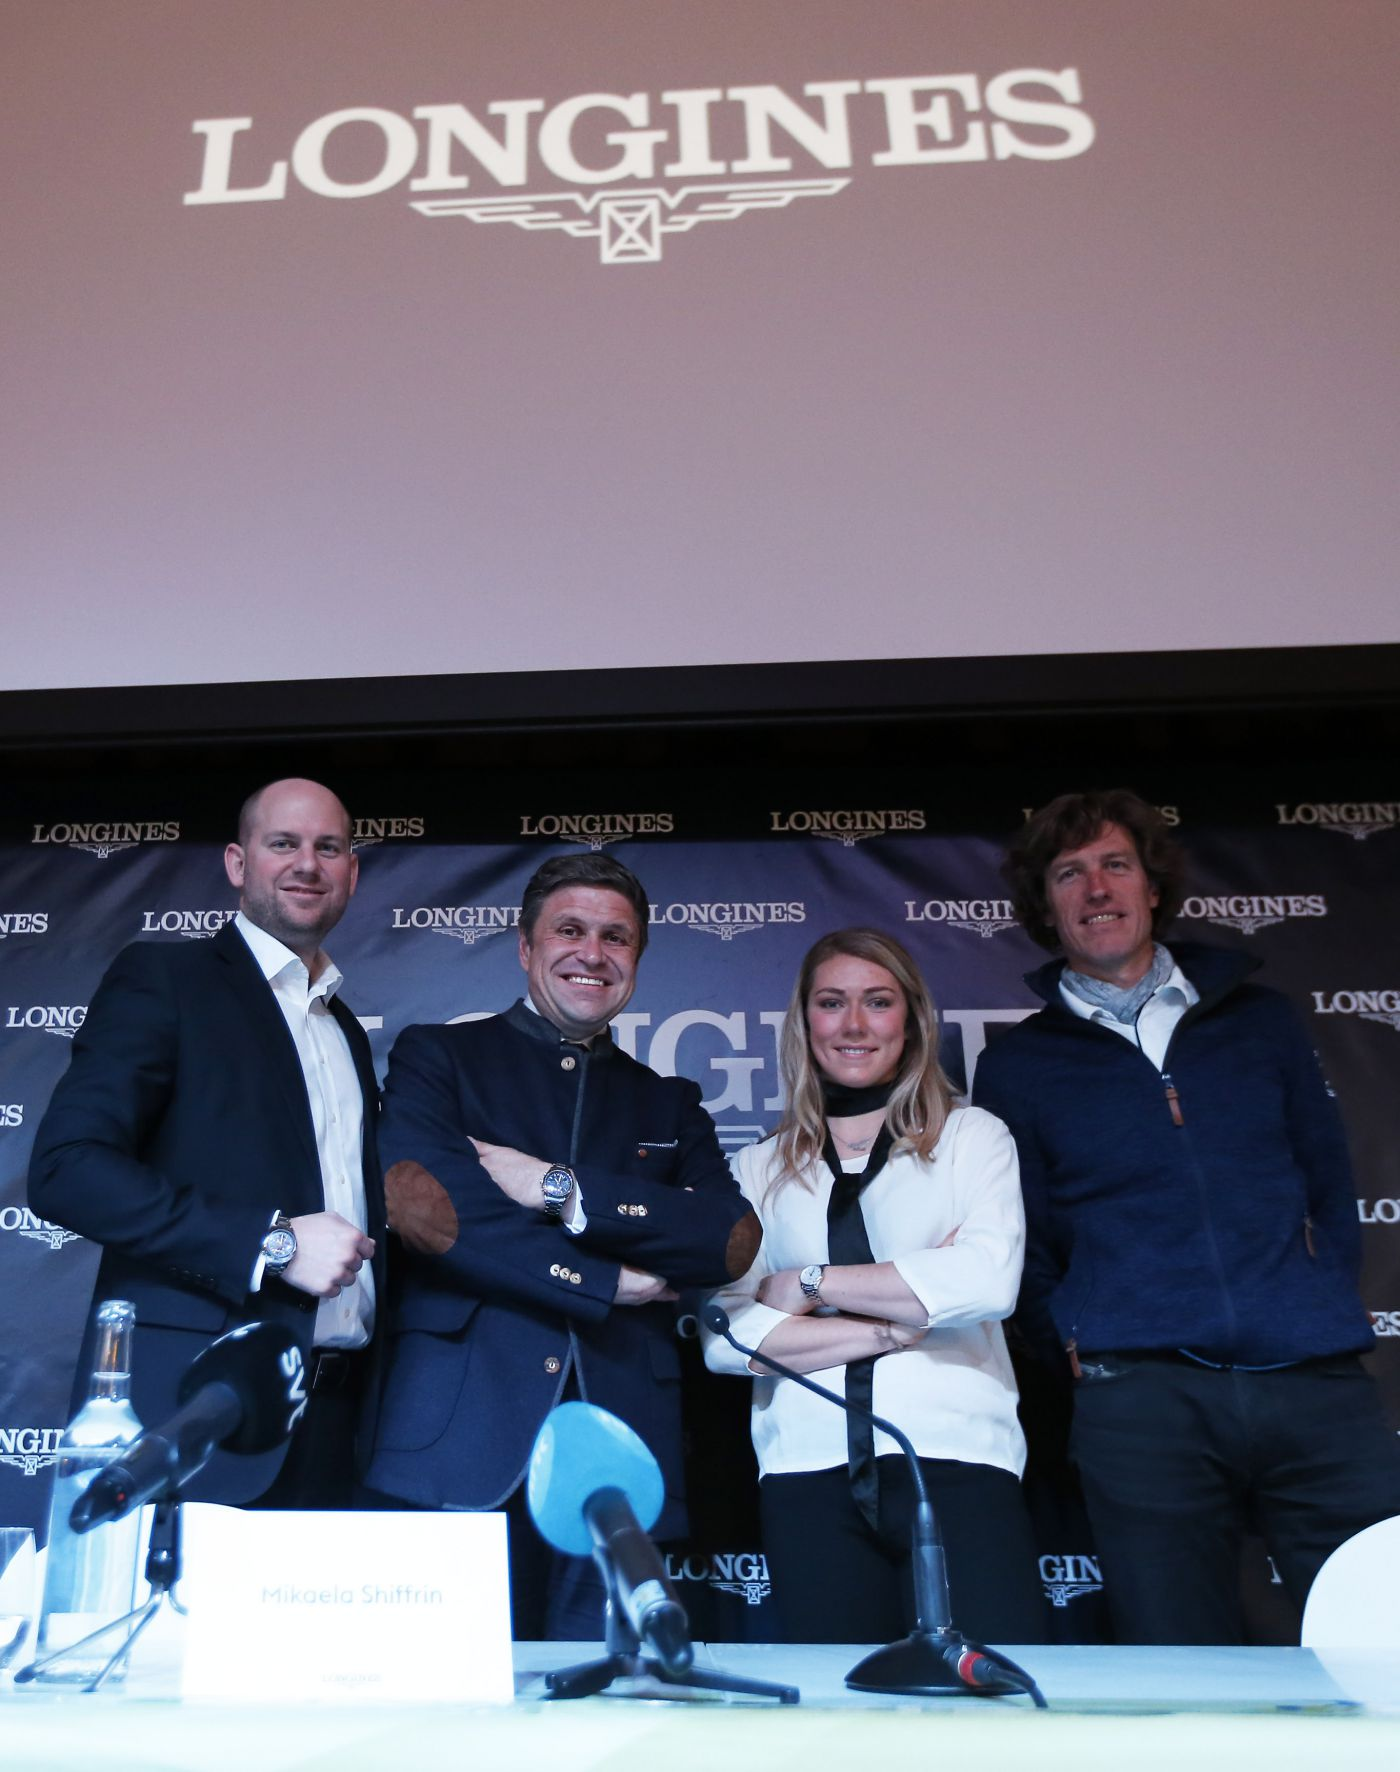 Longines Alpine Skiing Event: Official launch of the Longines Live Alpine Data system at the FIS Alpine World Ski Championships St. Moritz 2017 3